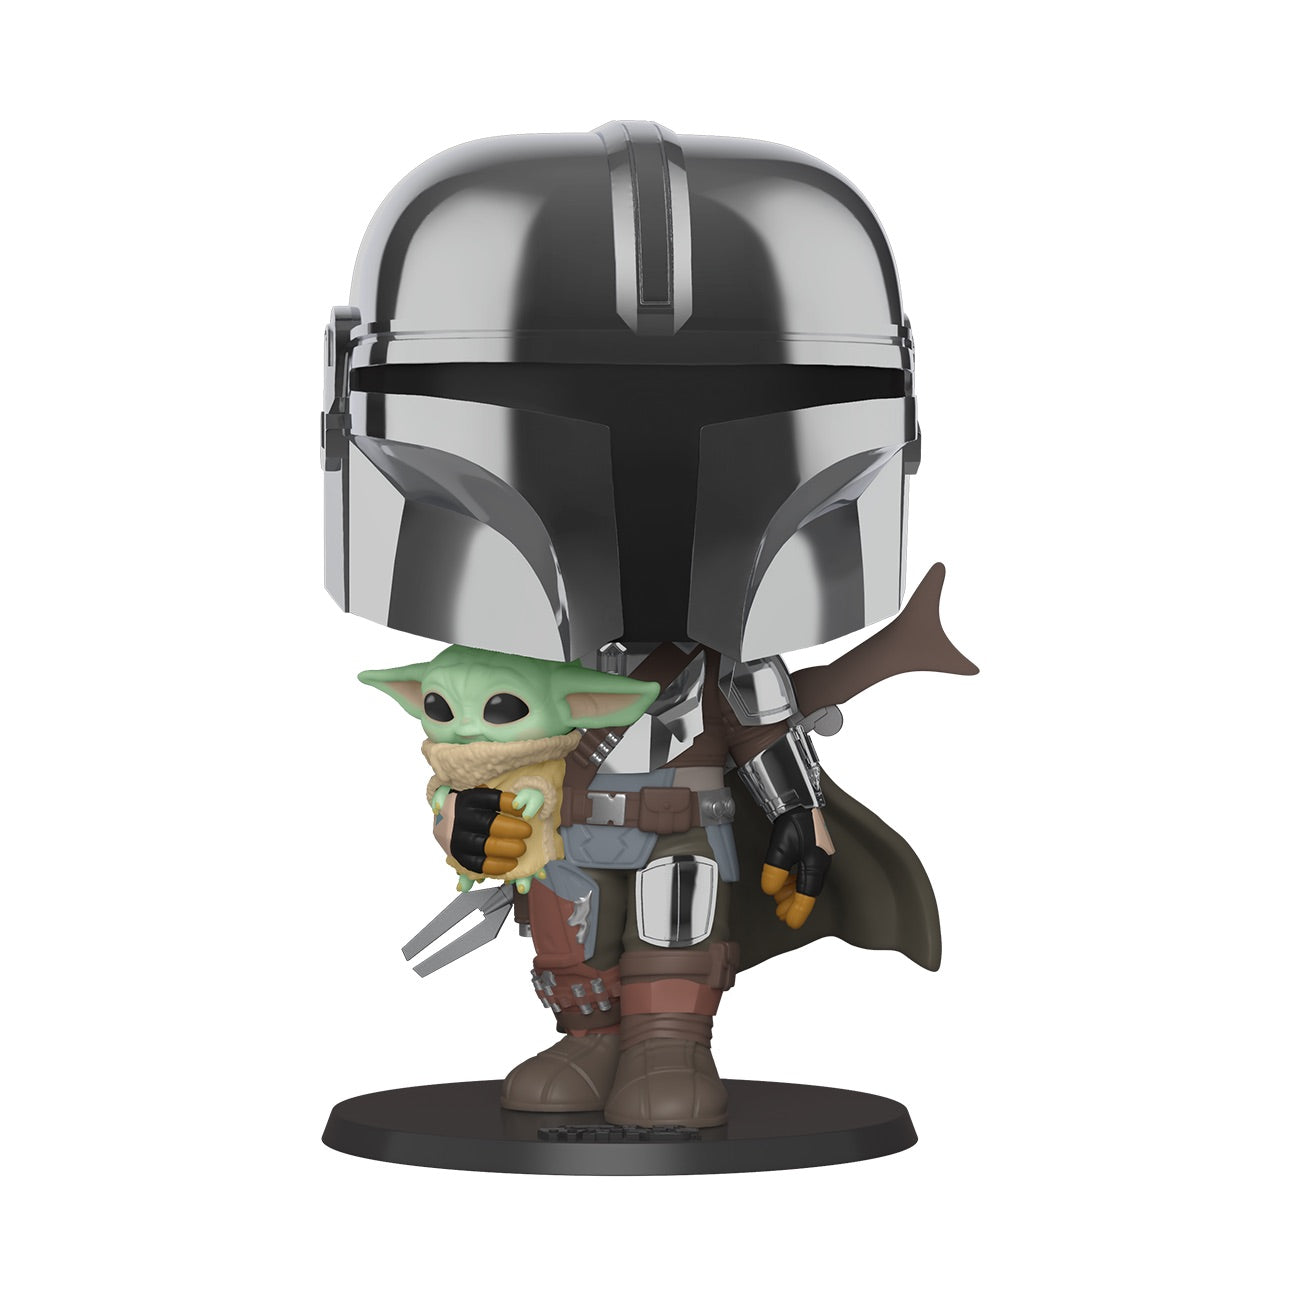 Star Wars The Mandalorian with Child 10-Inch Chrome